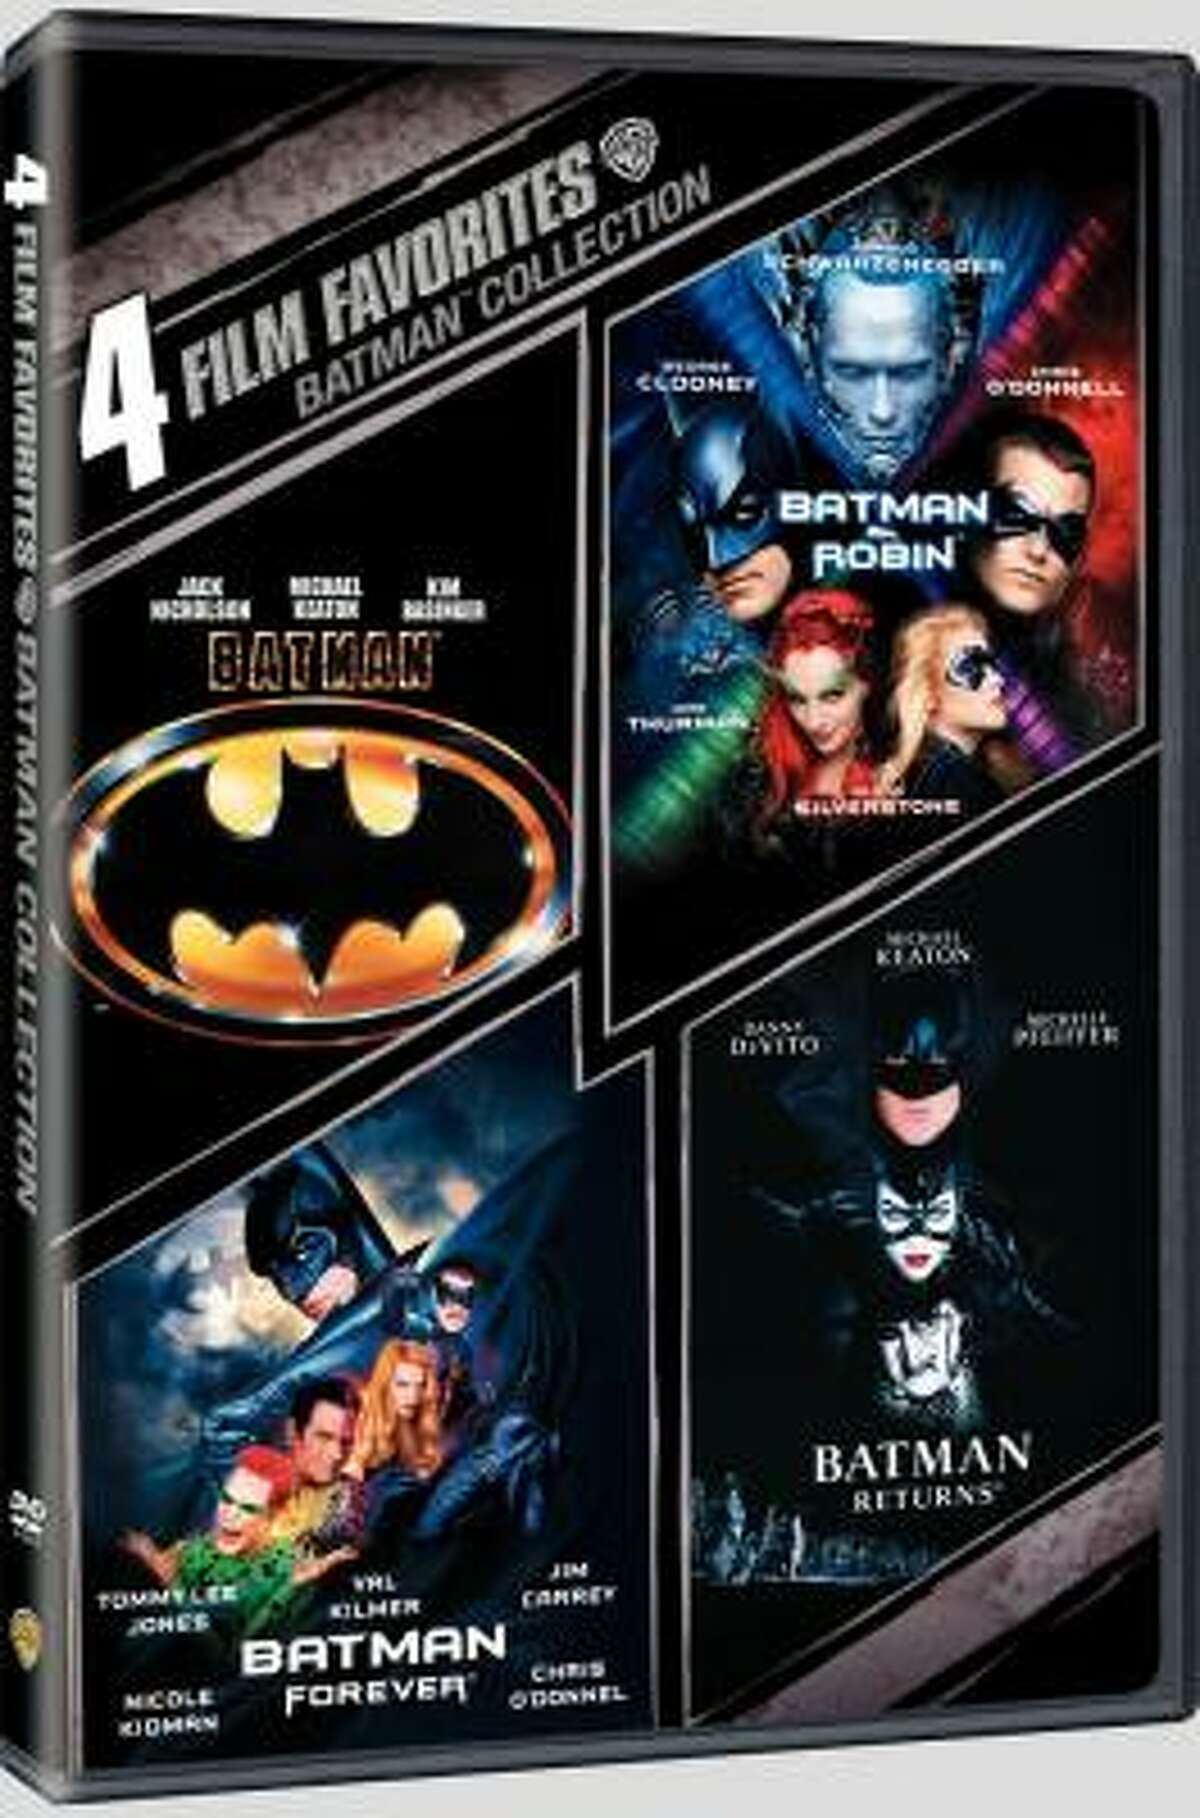 Batman Collection: 4 Film Favorites features Batman, Batman Returns, Batman and Robin and Batman Forever for $19.94. Only 1989's Batman is worth owning.